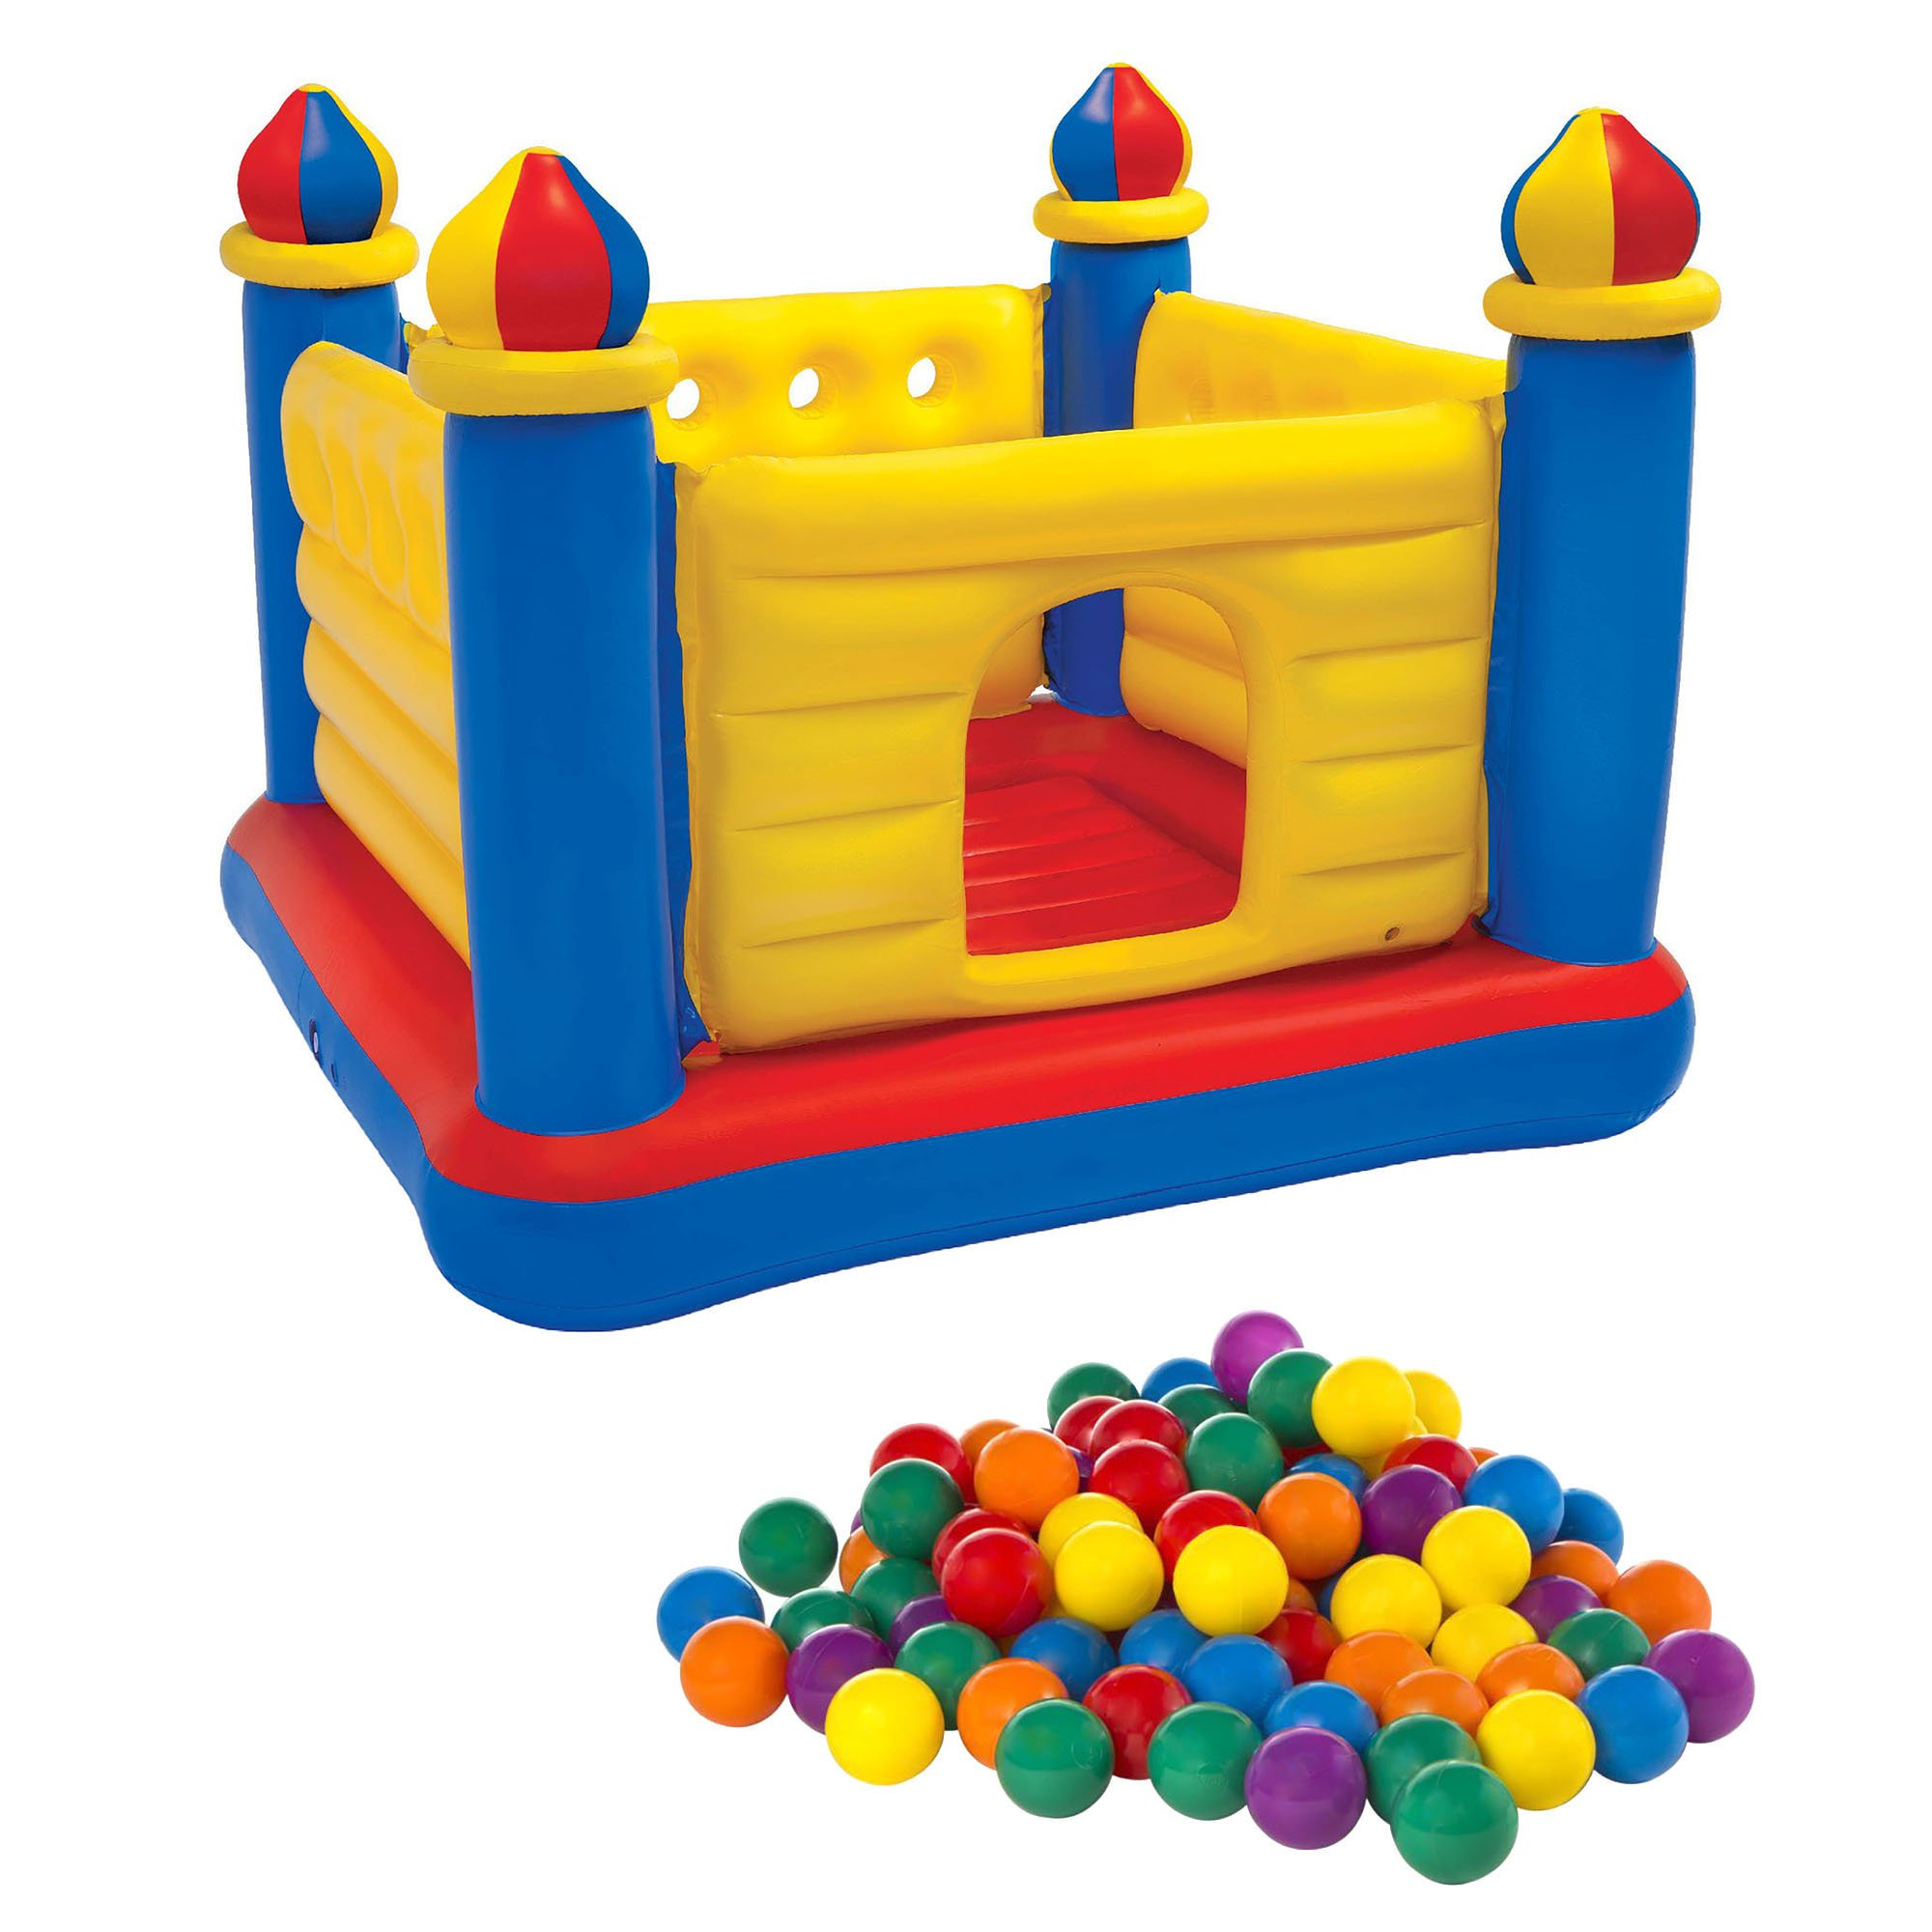 Fisher Price 69 X 68 53 Bouncetastic Bouncer With 50 Play Balls As For The Hop Up Ball Thingy I Just Found Tiny Metal From An